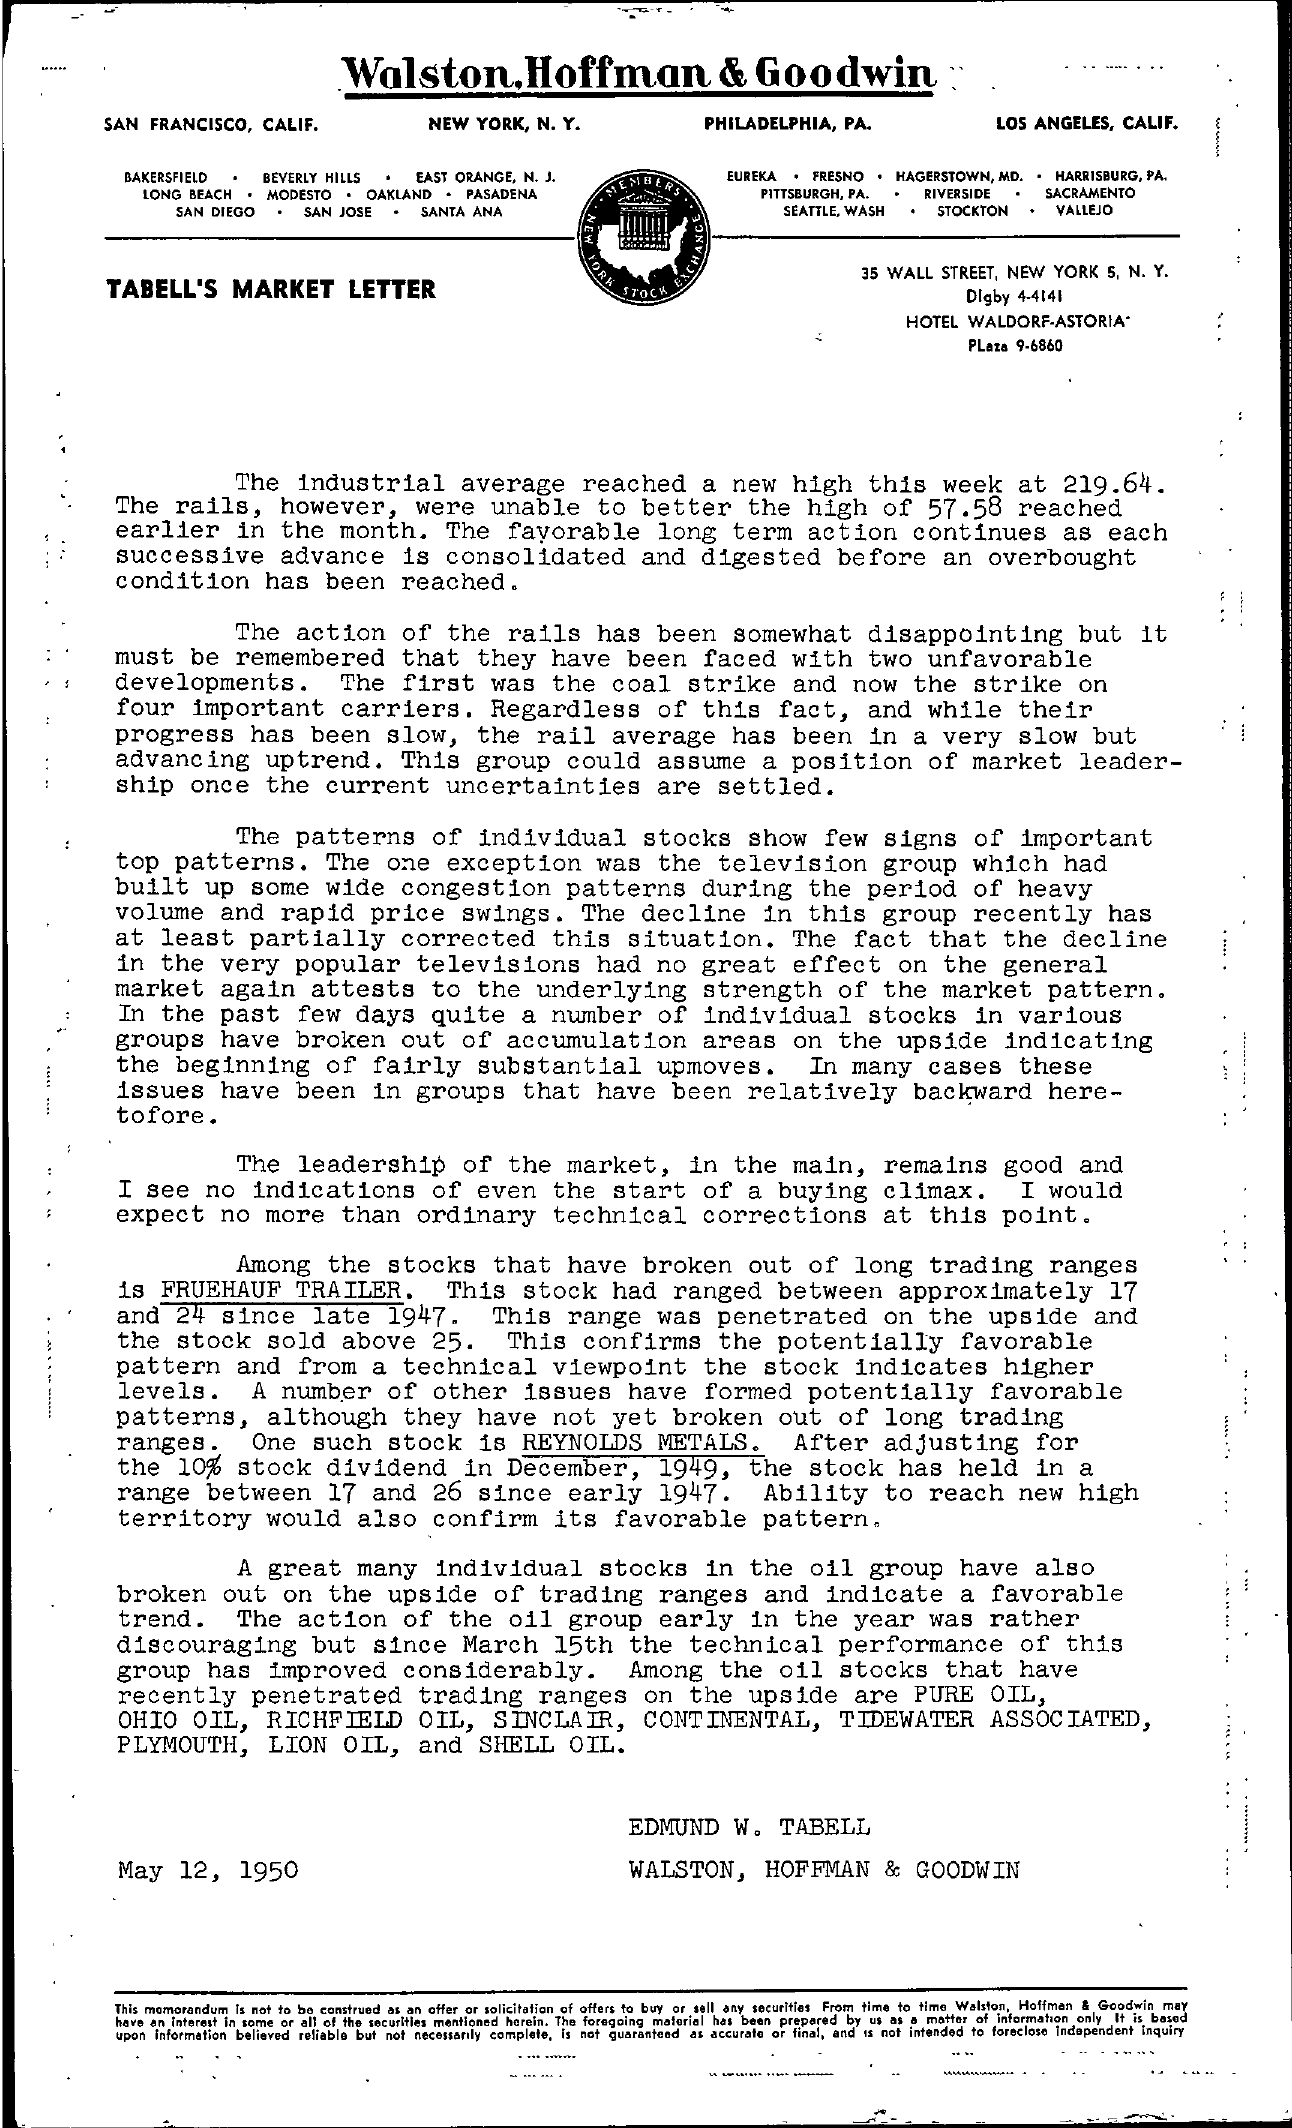 Tabell's Market Letter - May 12, 1950